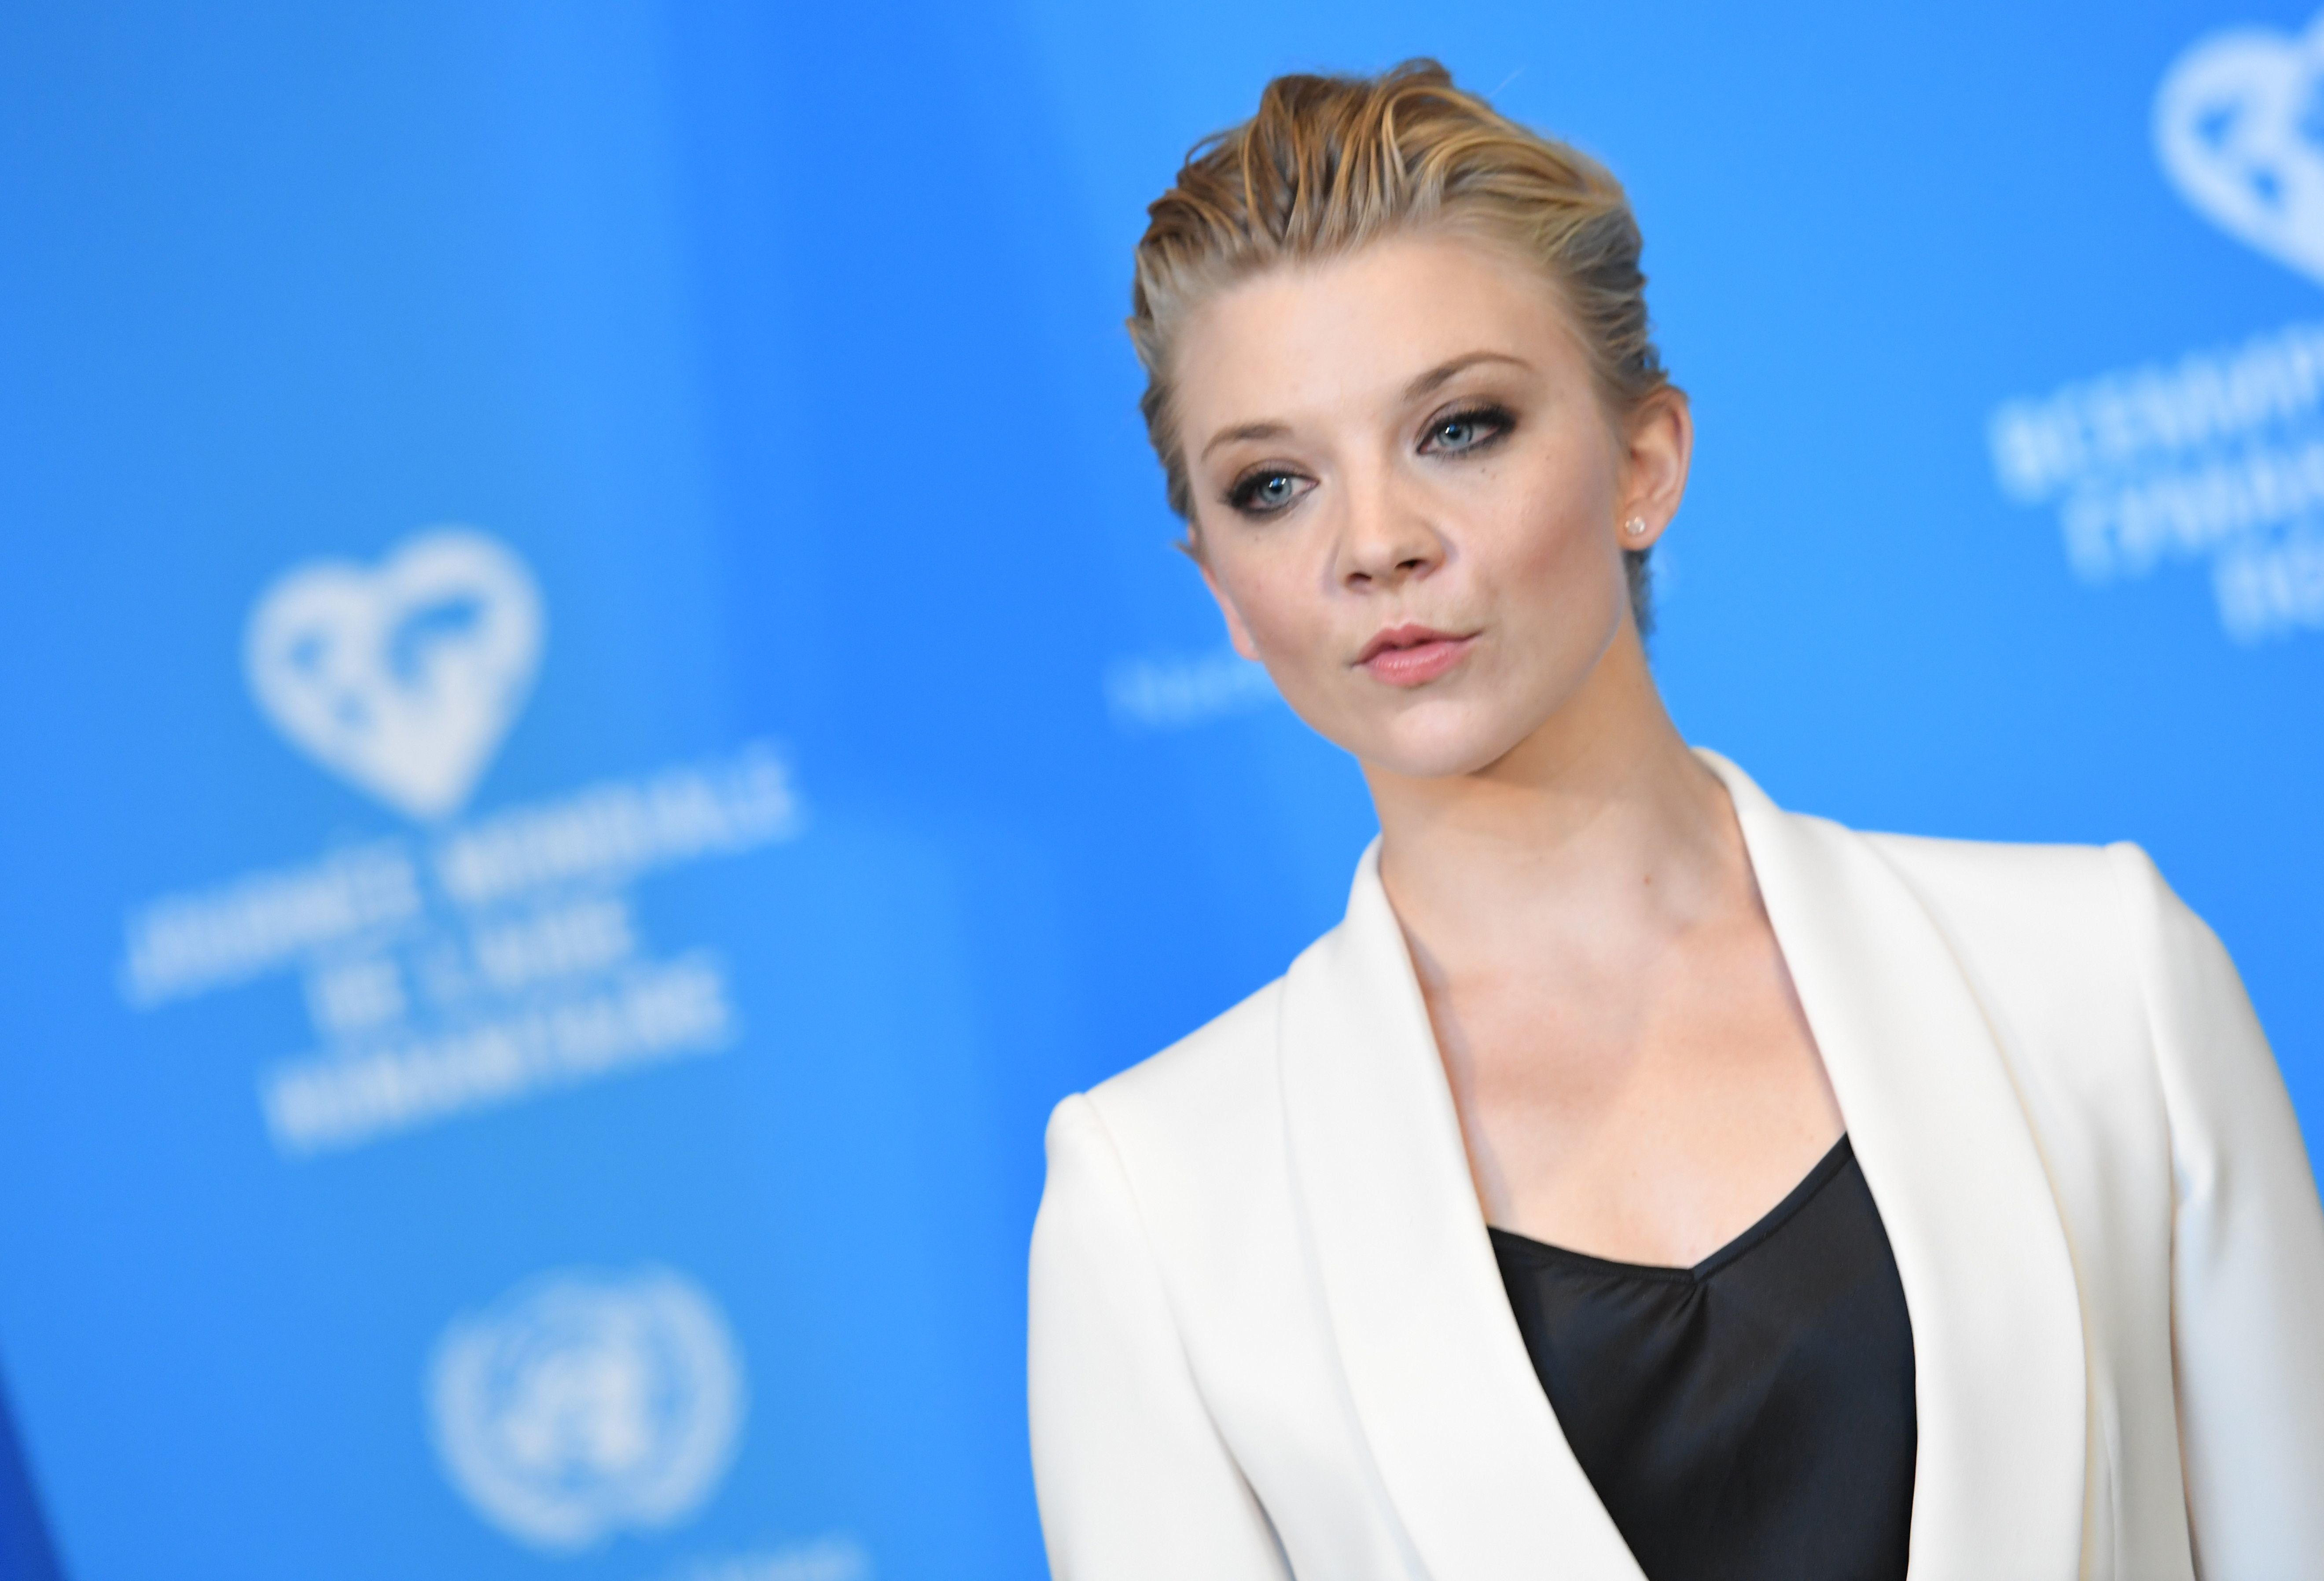 Actress Natalie Dormer attends the 'One Humanity' event for World Humanitarian Day 2016 at United Nations Headquarters in New York on August 19, 2016. / AFP / Angela WEISS        (Photo credit should read ANGELA WEISS/AFP/Getty Images)